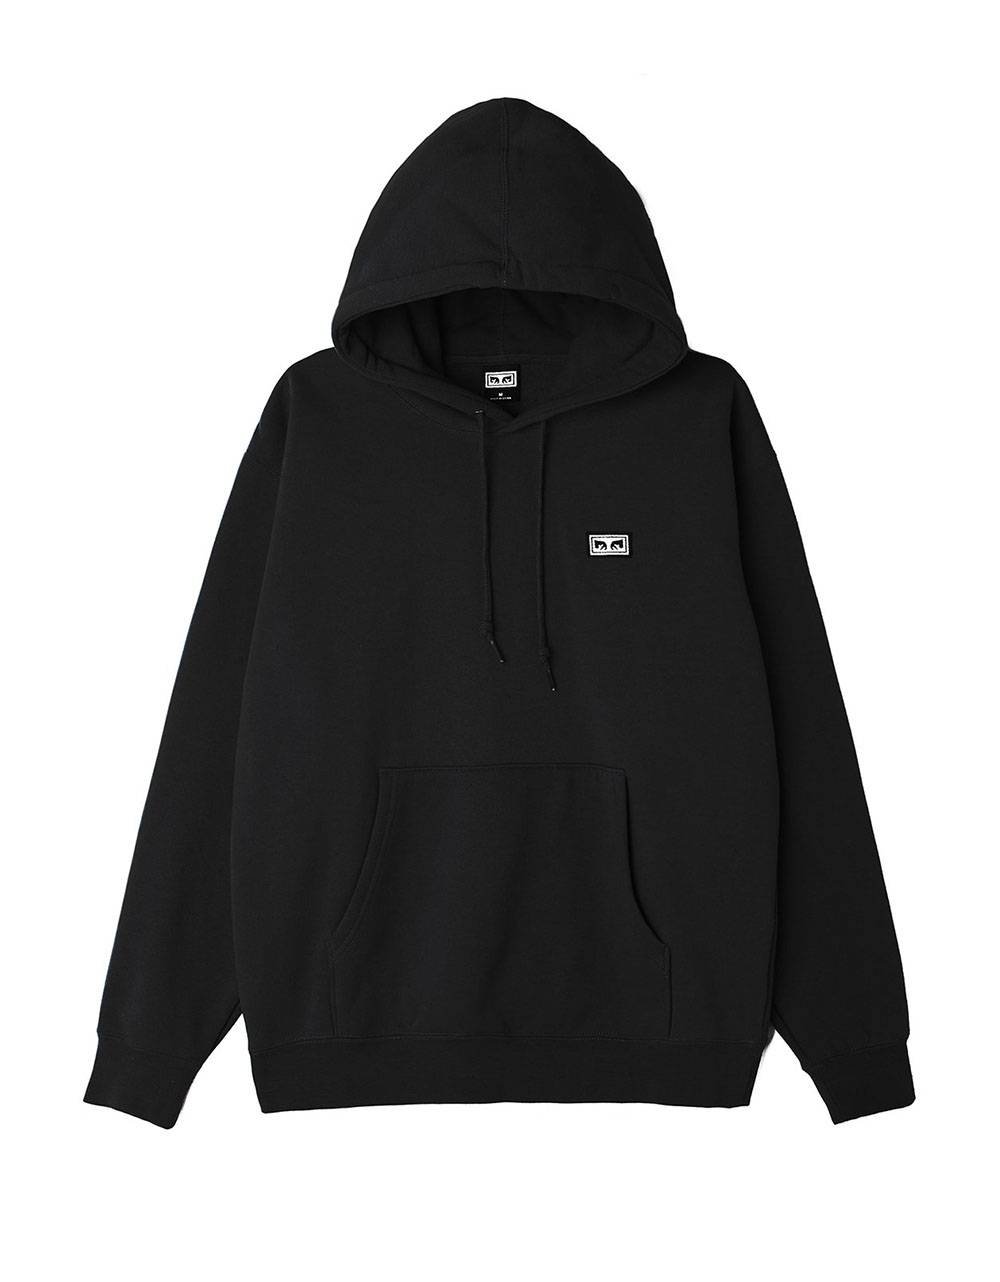 Obey All eyes II hoodie essential fleece - black obey Sweater 96,00 €